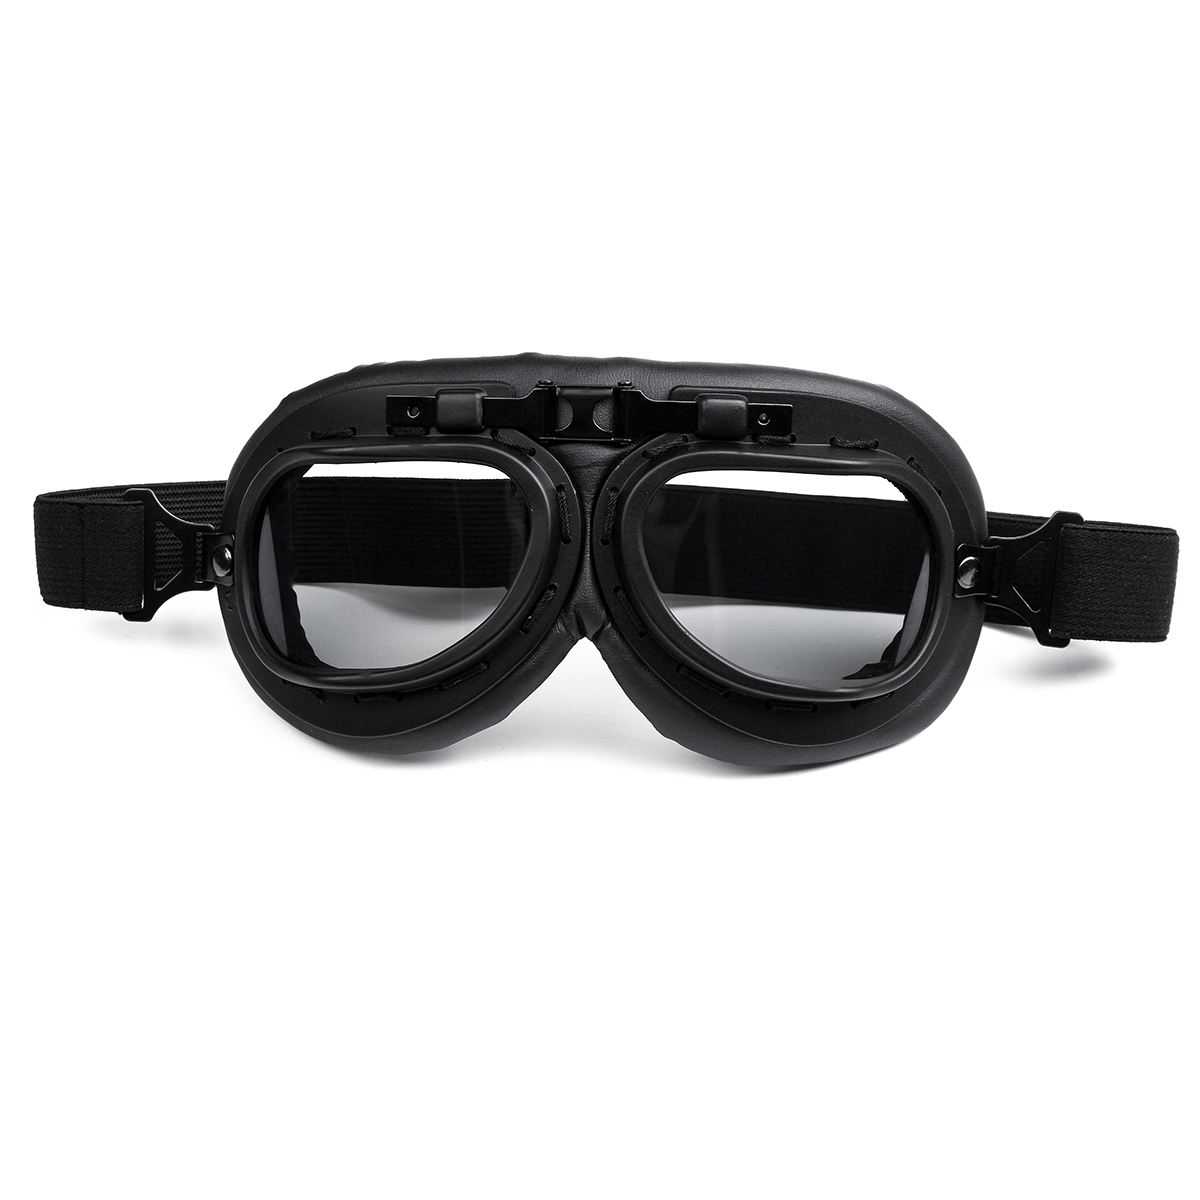 Windproof Vintage Helmet Goggles Motorcycle Scooter ATV Cycling Riding Eyewear Glasses